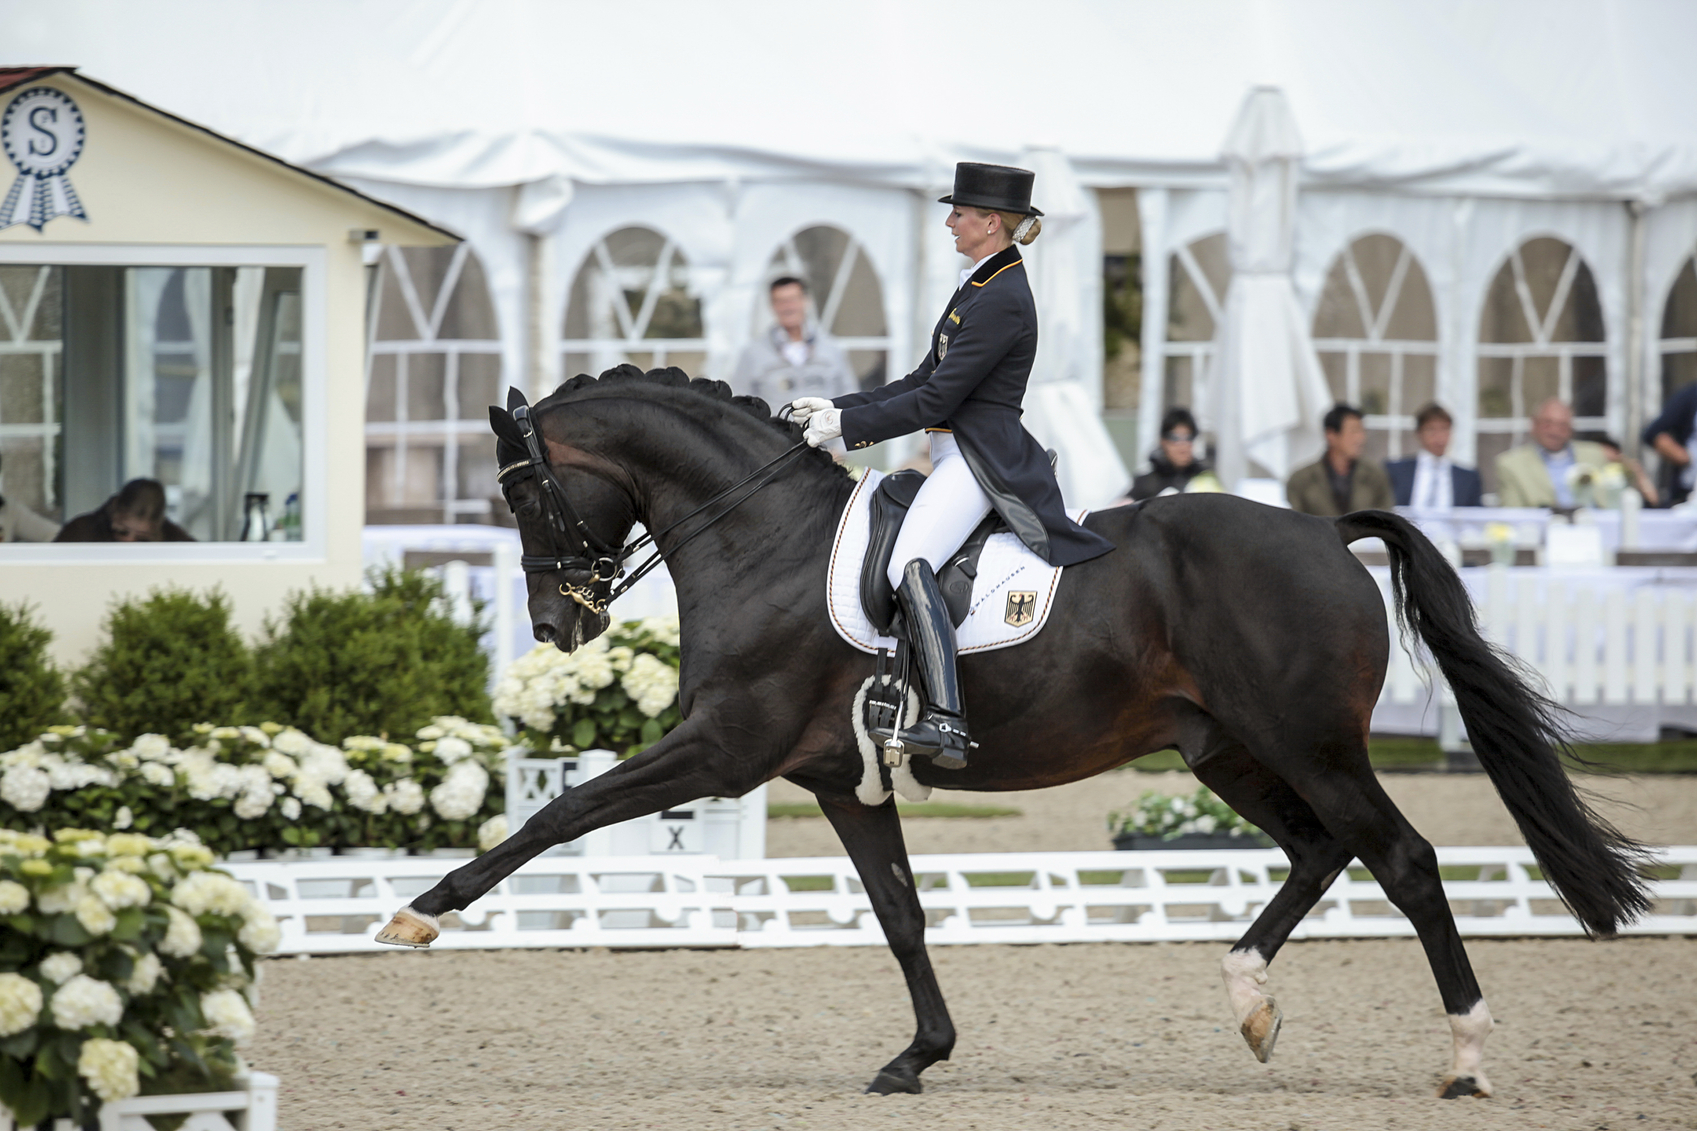 Hagen, Germany - July 9, 2015: Jessica von Bredow-Werndl of Germany and her stallion Unee during the CDIO5* - FEI Grand Prix competition at the CDIO on July 9, 2015 in Hagen, Germany. Here in extended trot. Reached 3rd place.